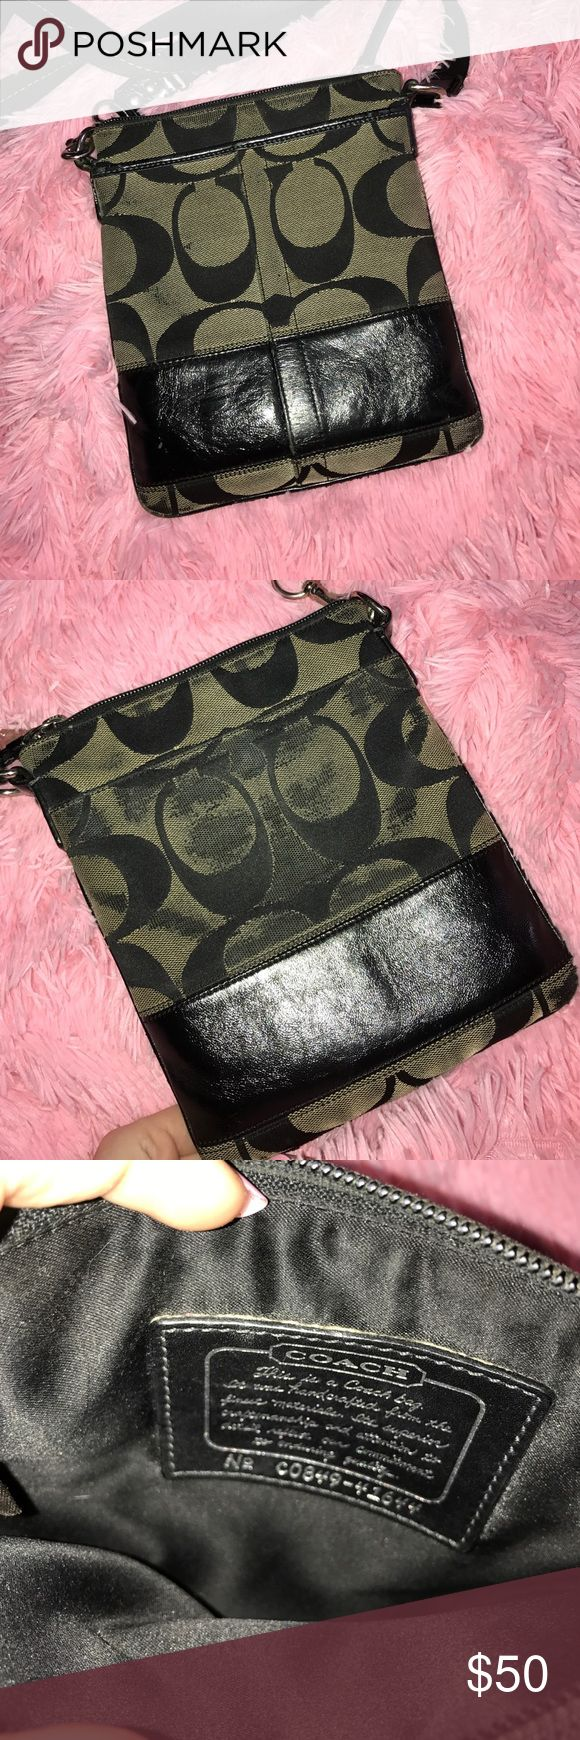 Coach Crossbody Coach grey & black crossbody bag, wear on the back from rubbing against jeans, front and back compartments, adjustable strap Coach Bags Crossbody Bags